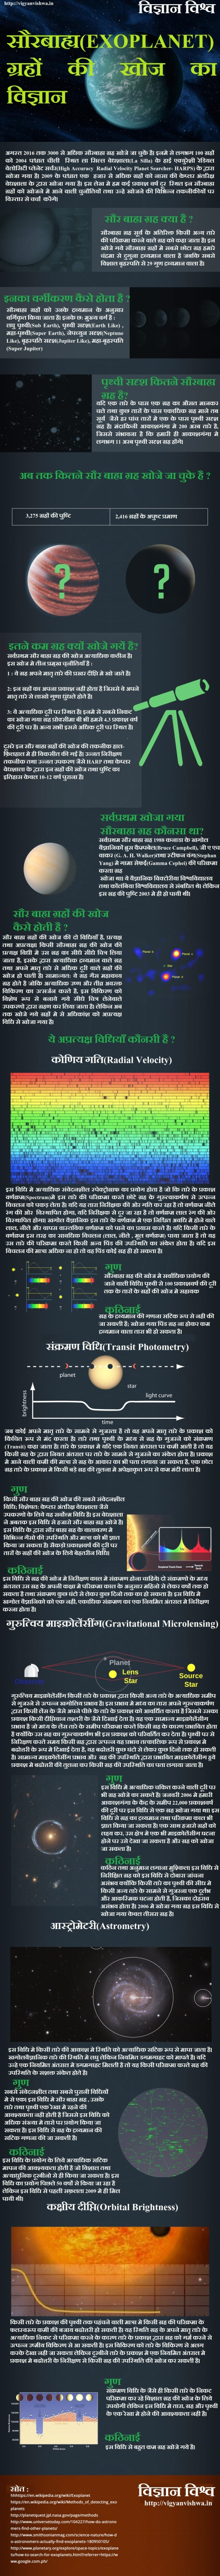 the-science-of-searching-for-exoplanets_v6